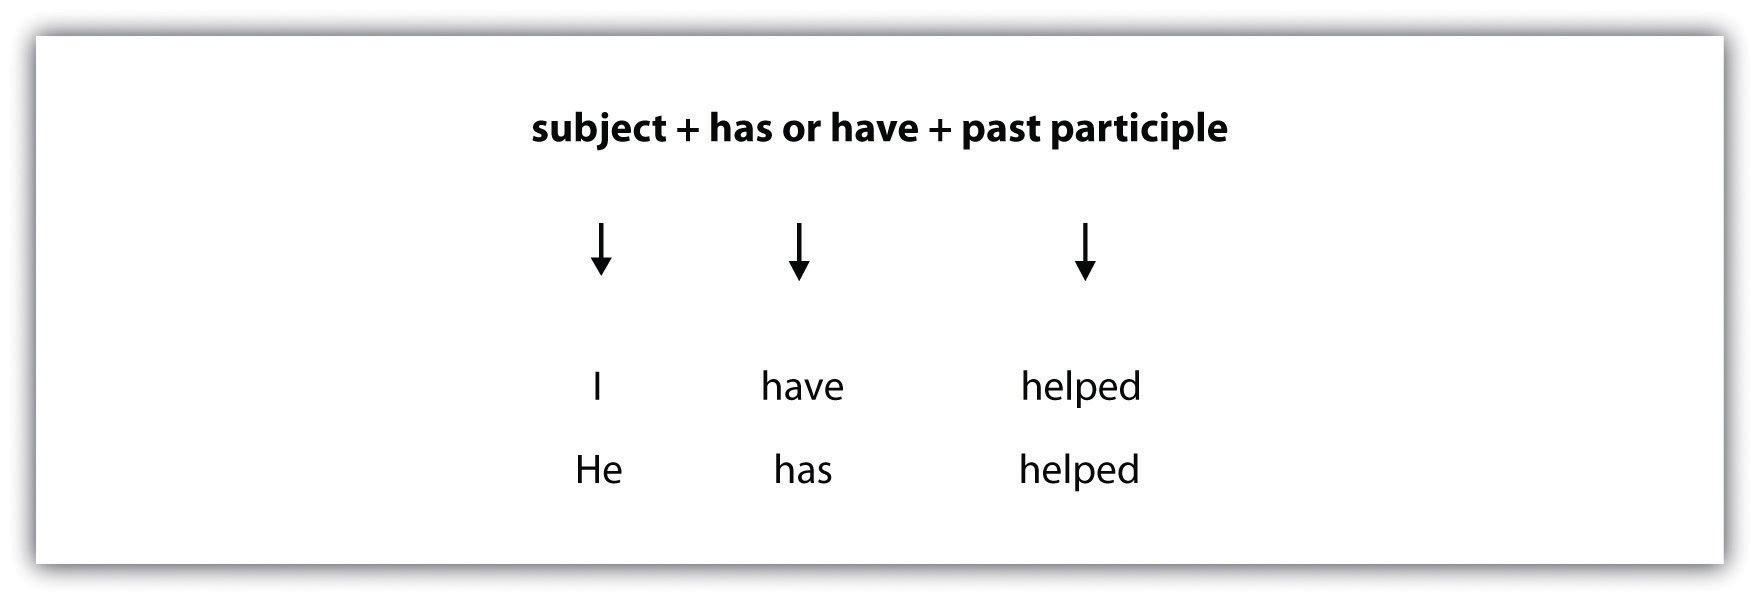 Subject (I and He), has or have (have and has), past participle (helped and helped)